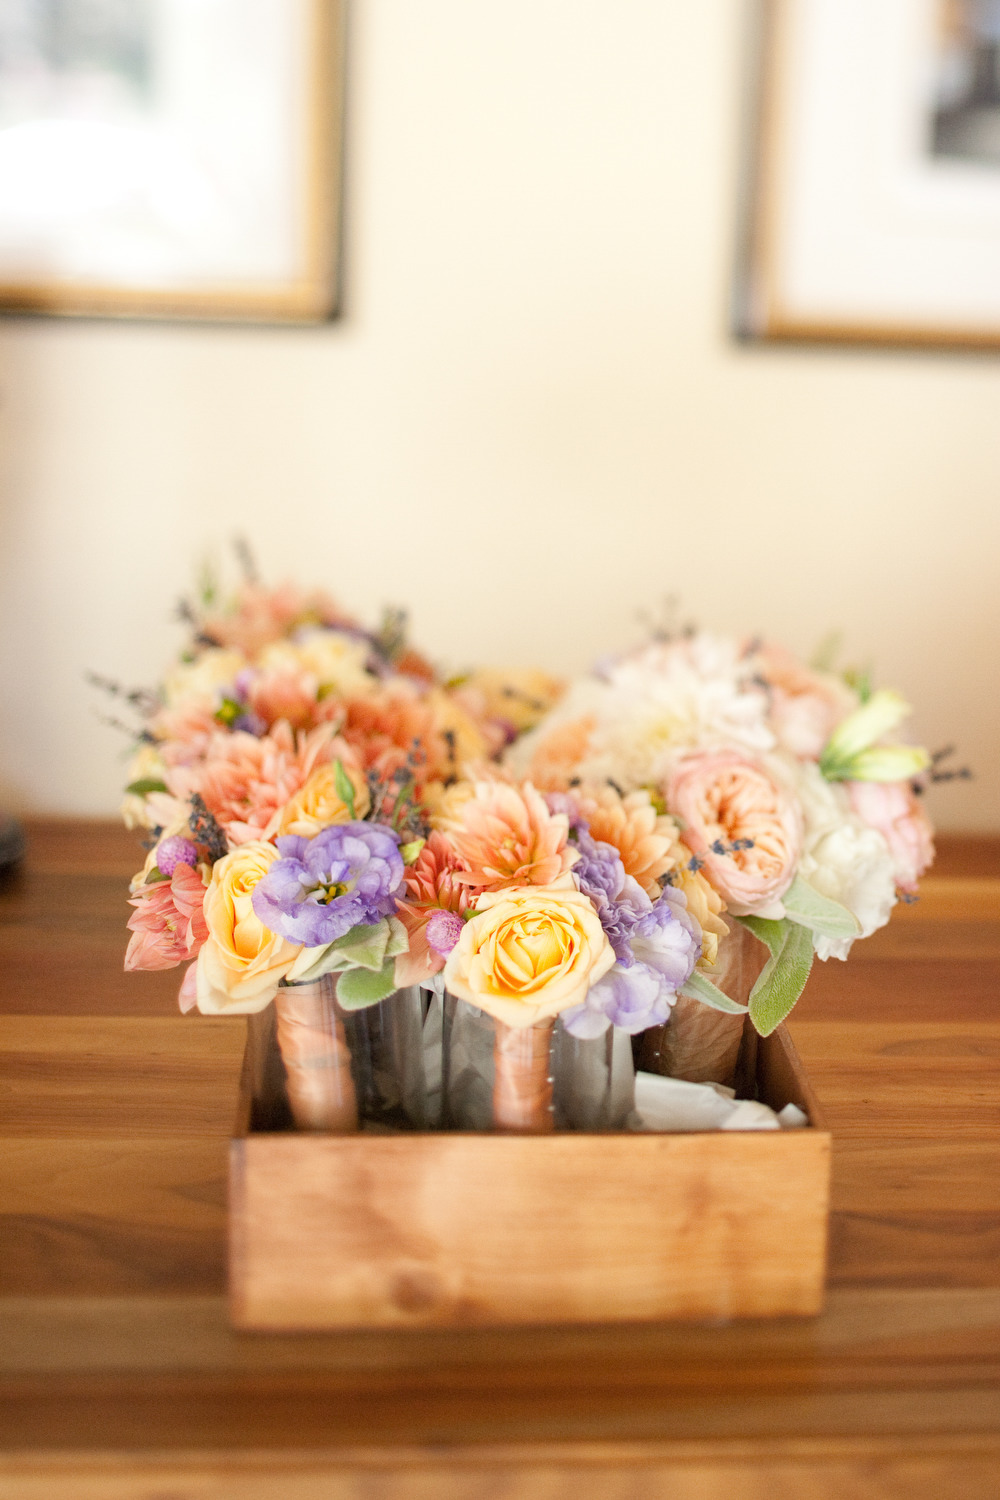 Elegant-real-weddings-lavender-peach-wedding-colors-bridesmaids-bouquets.full